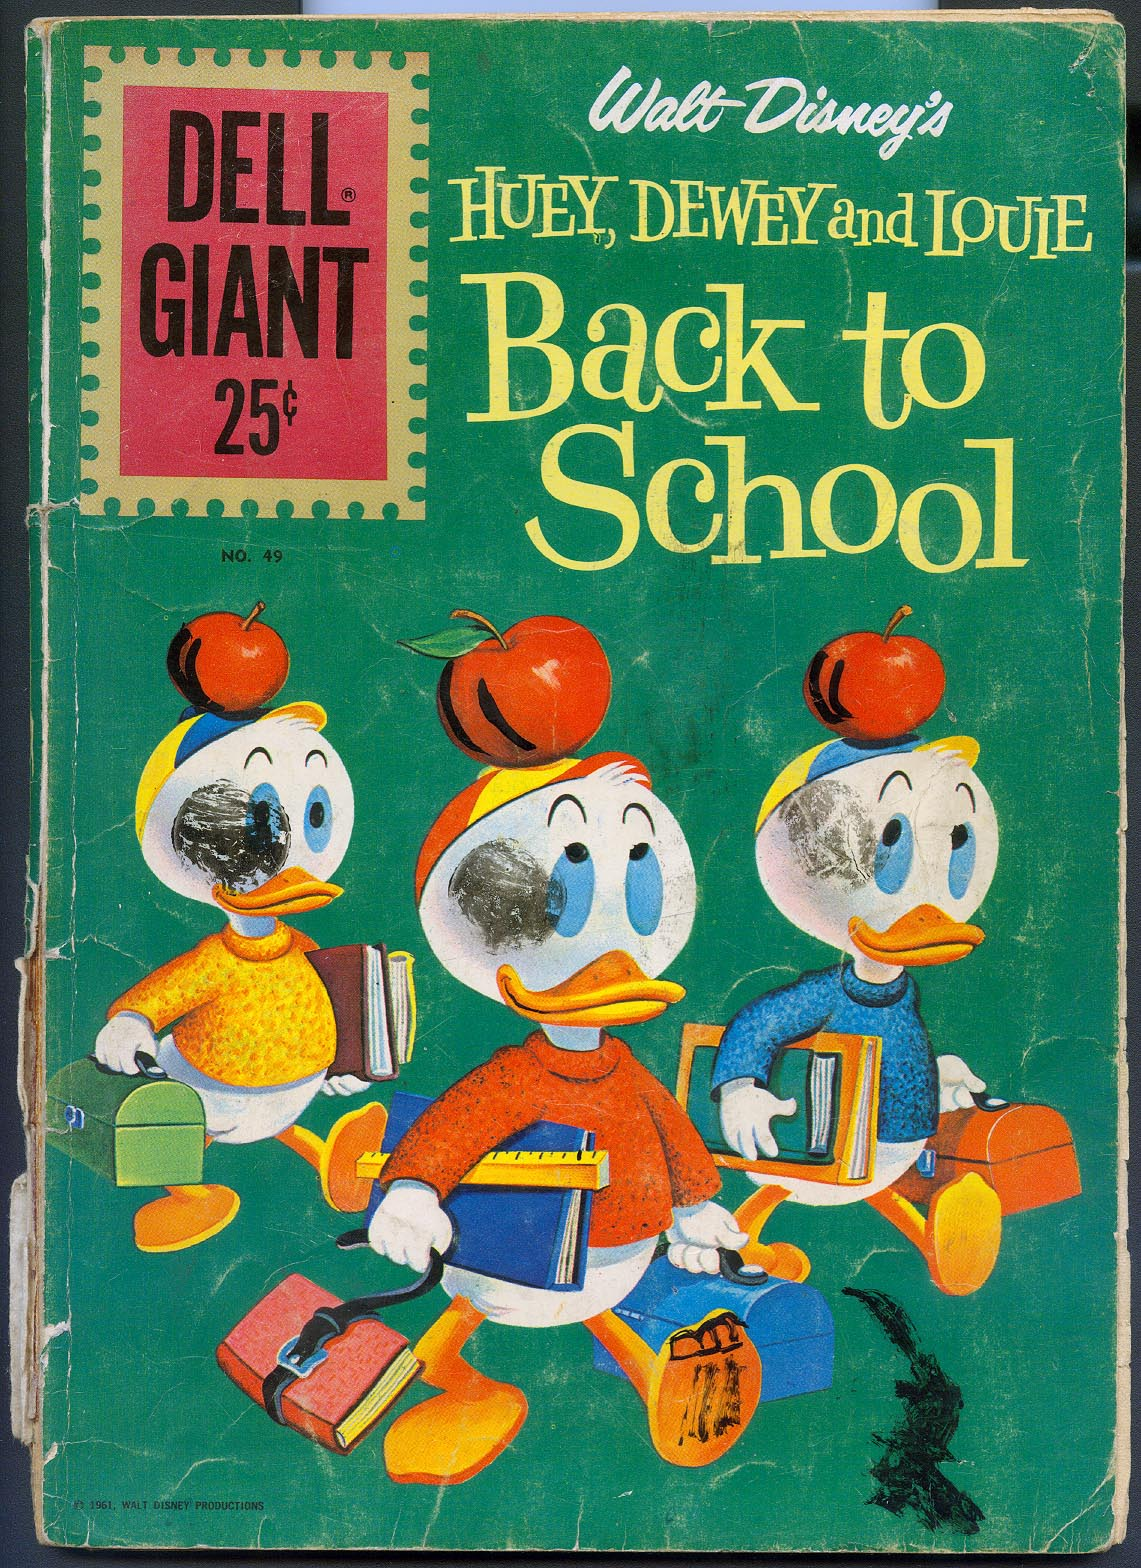 Dell Giant 49 (Huey Dewey And Louie Back To School) -G